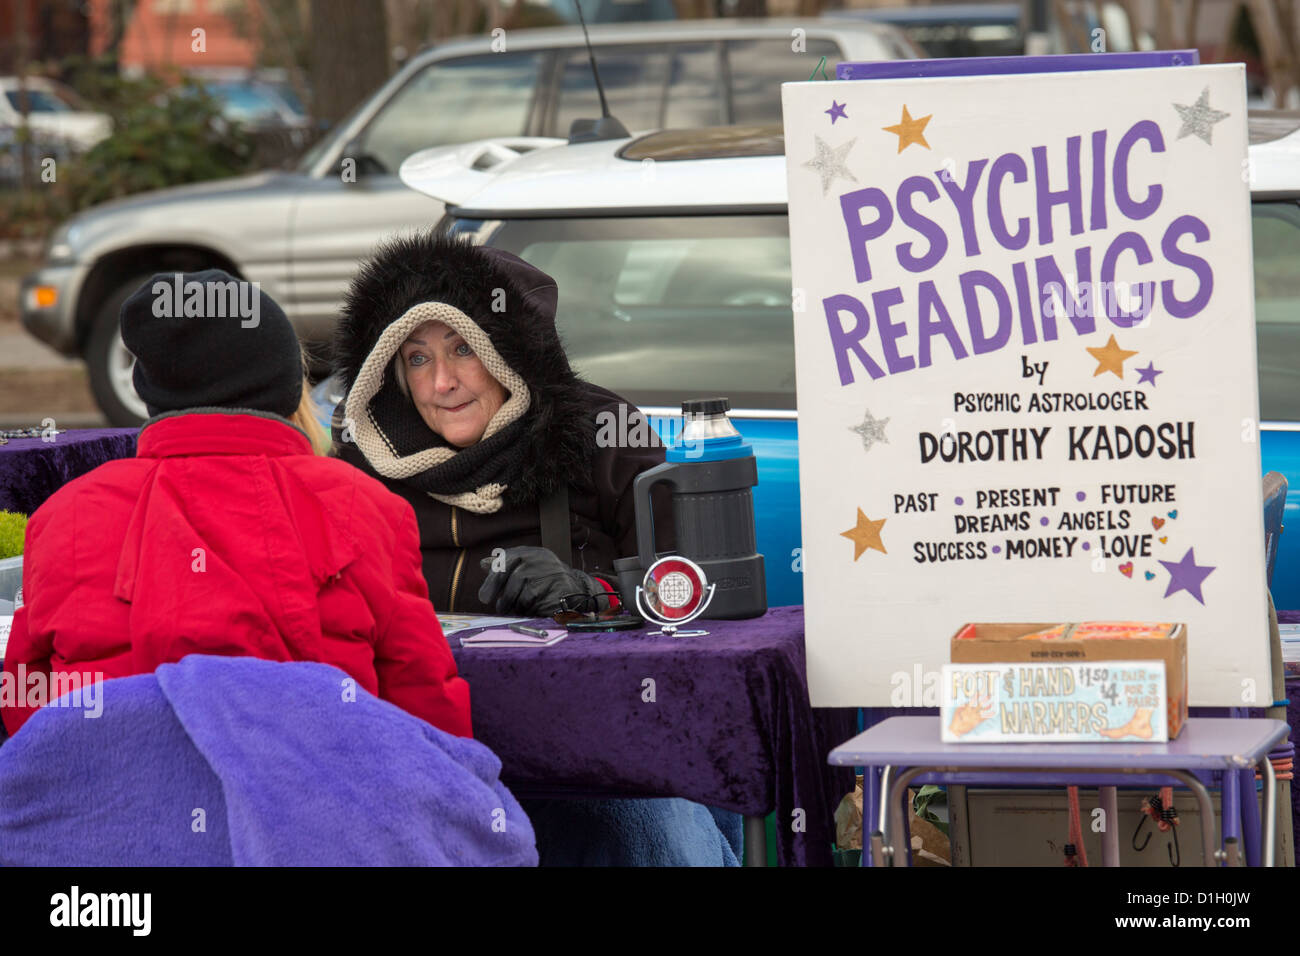 Washington, DC - A woman gives psychic readings on a street corner in the Eastern Market neighborhood. - Stock Image